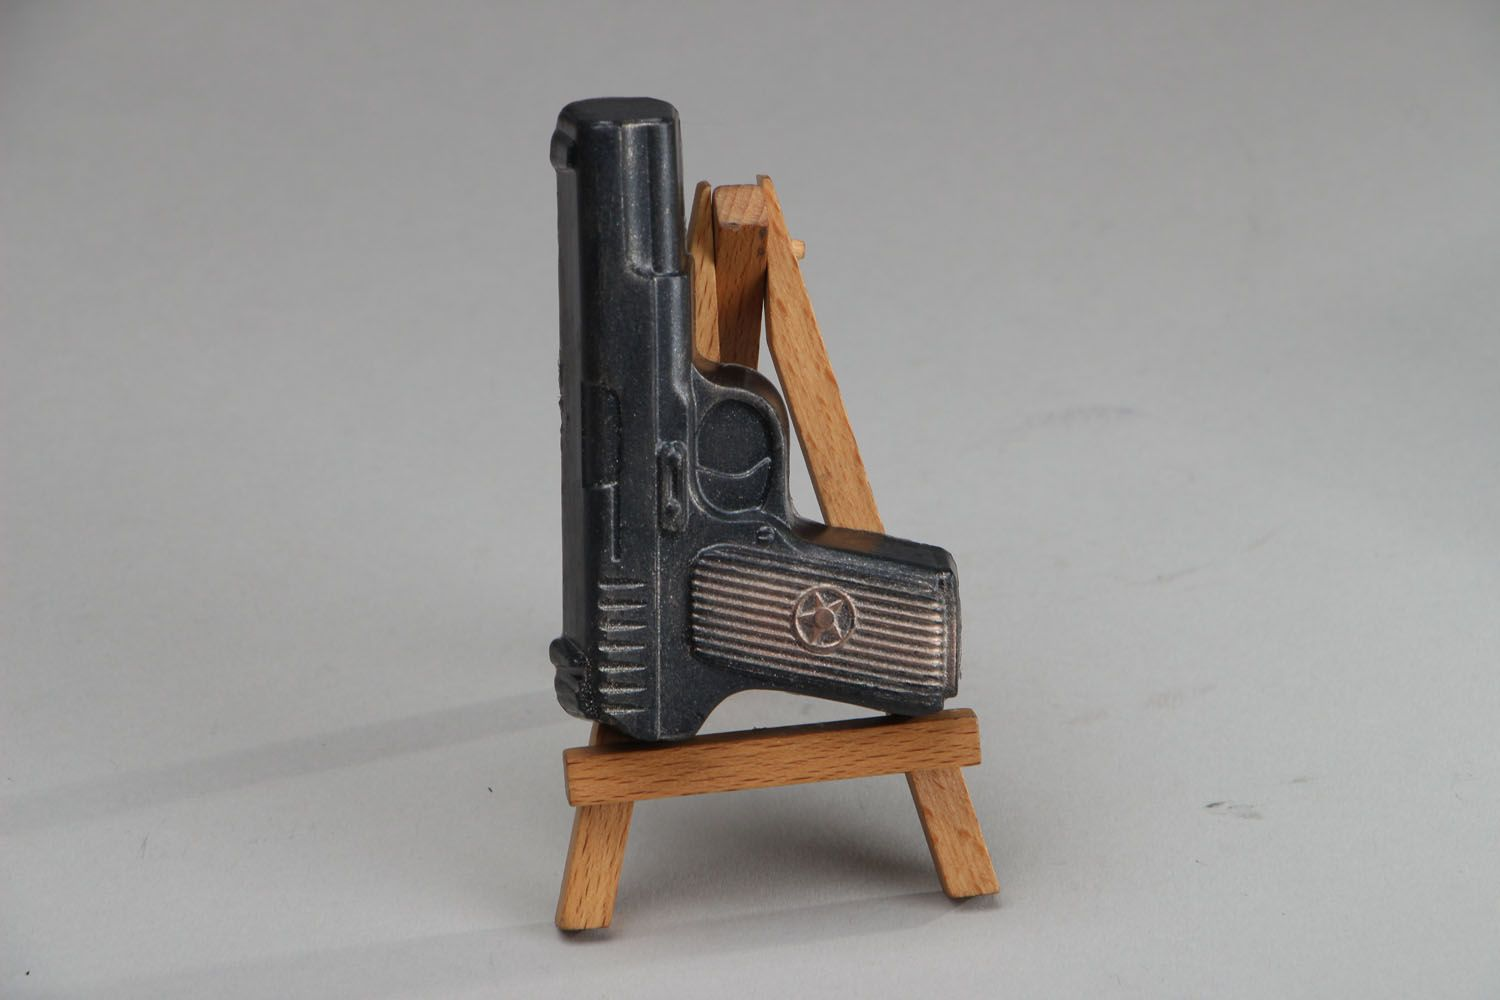 Natural soap in the shape of gun photo 1